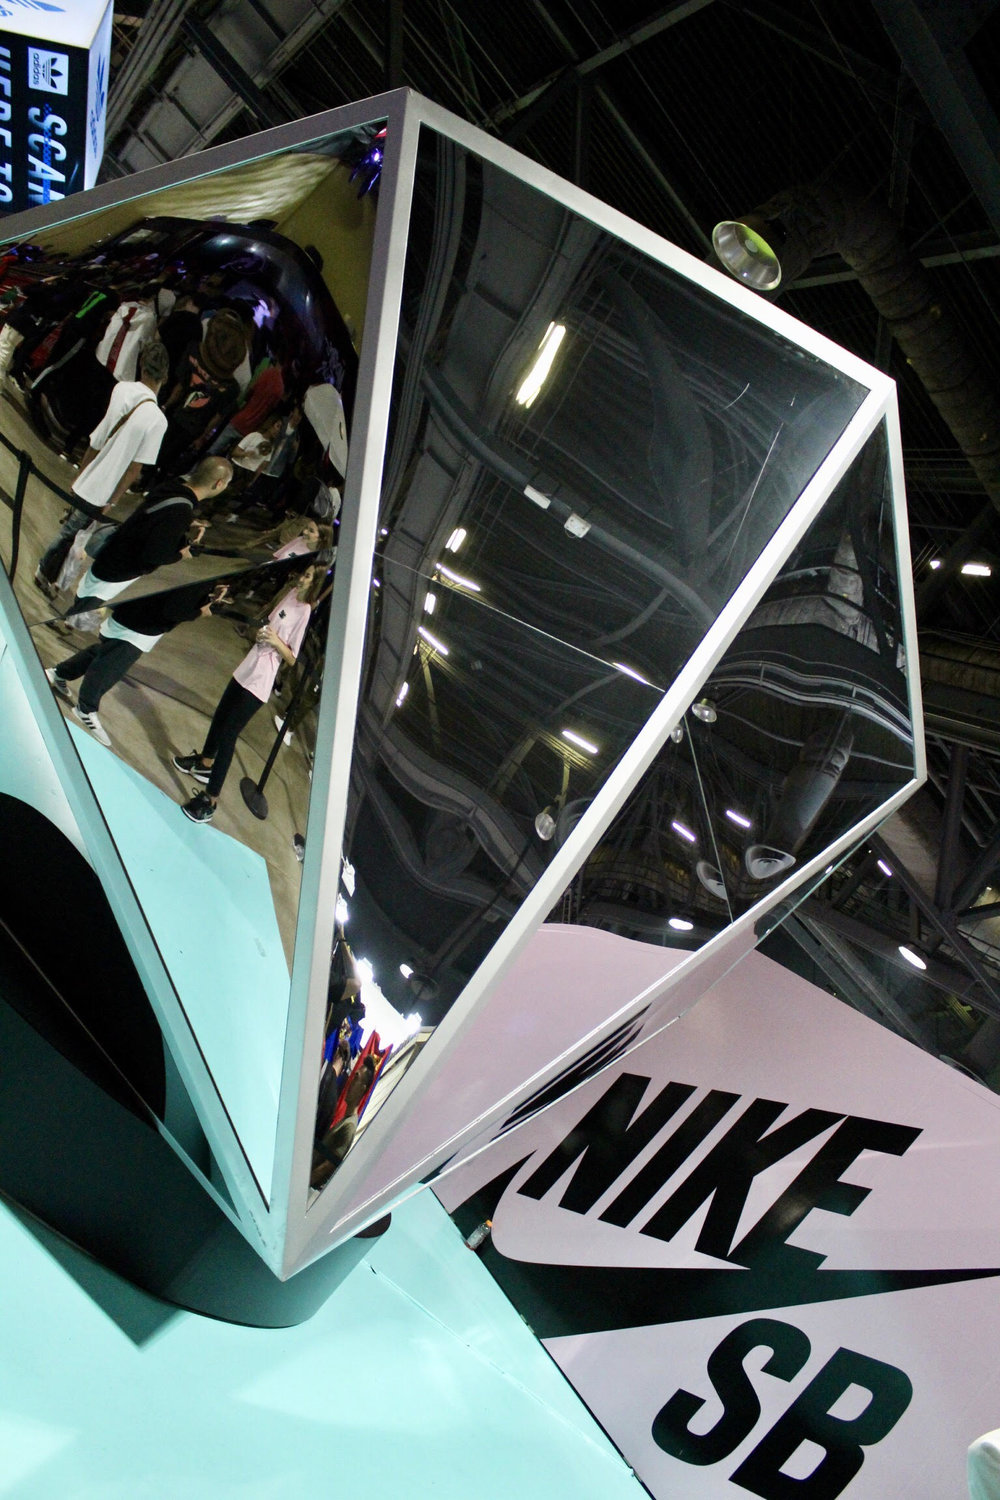 Nike SB x Diamond Supply Co. booth